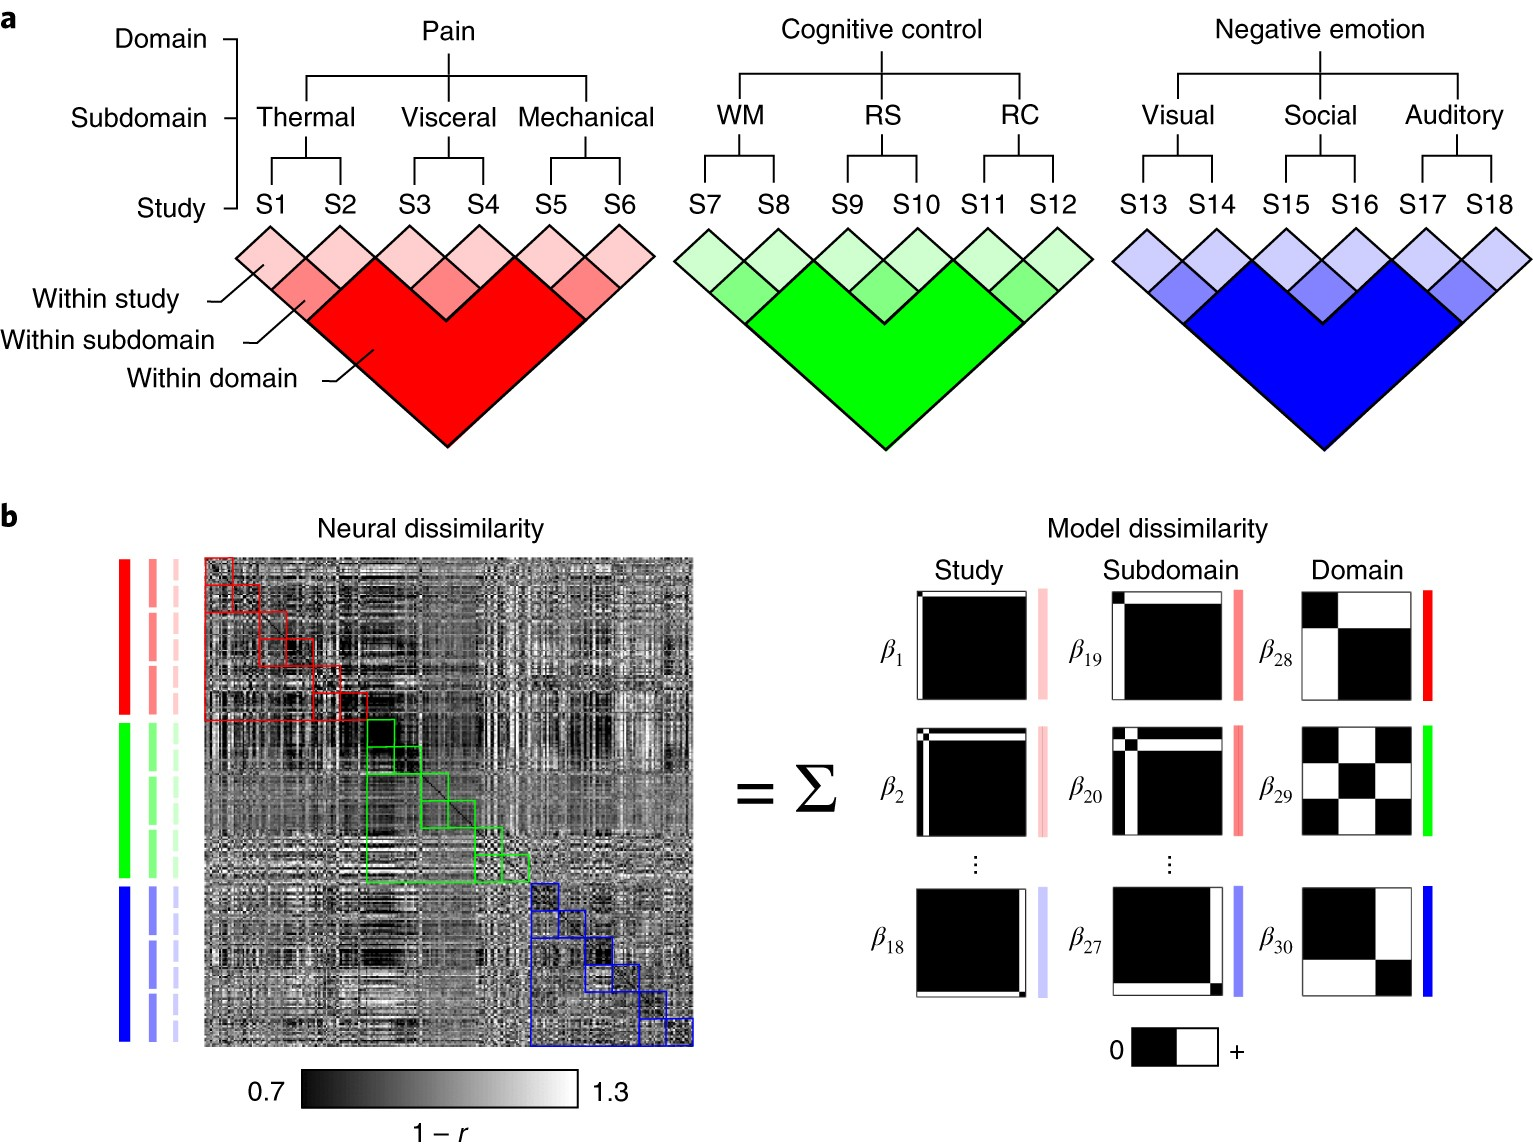 Generalizable Representations Of Pain Cognitive Control And Abstract Circuit Board With Binary Code Illustration Stock Photo Negative Emotion In Medial Frontal Cortex Nature Neuroscience